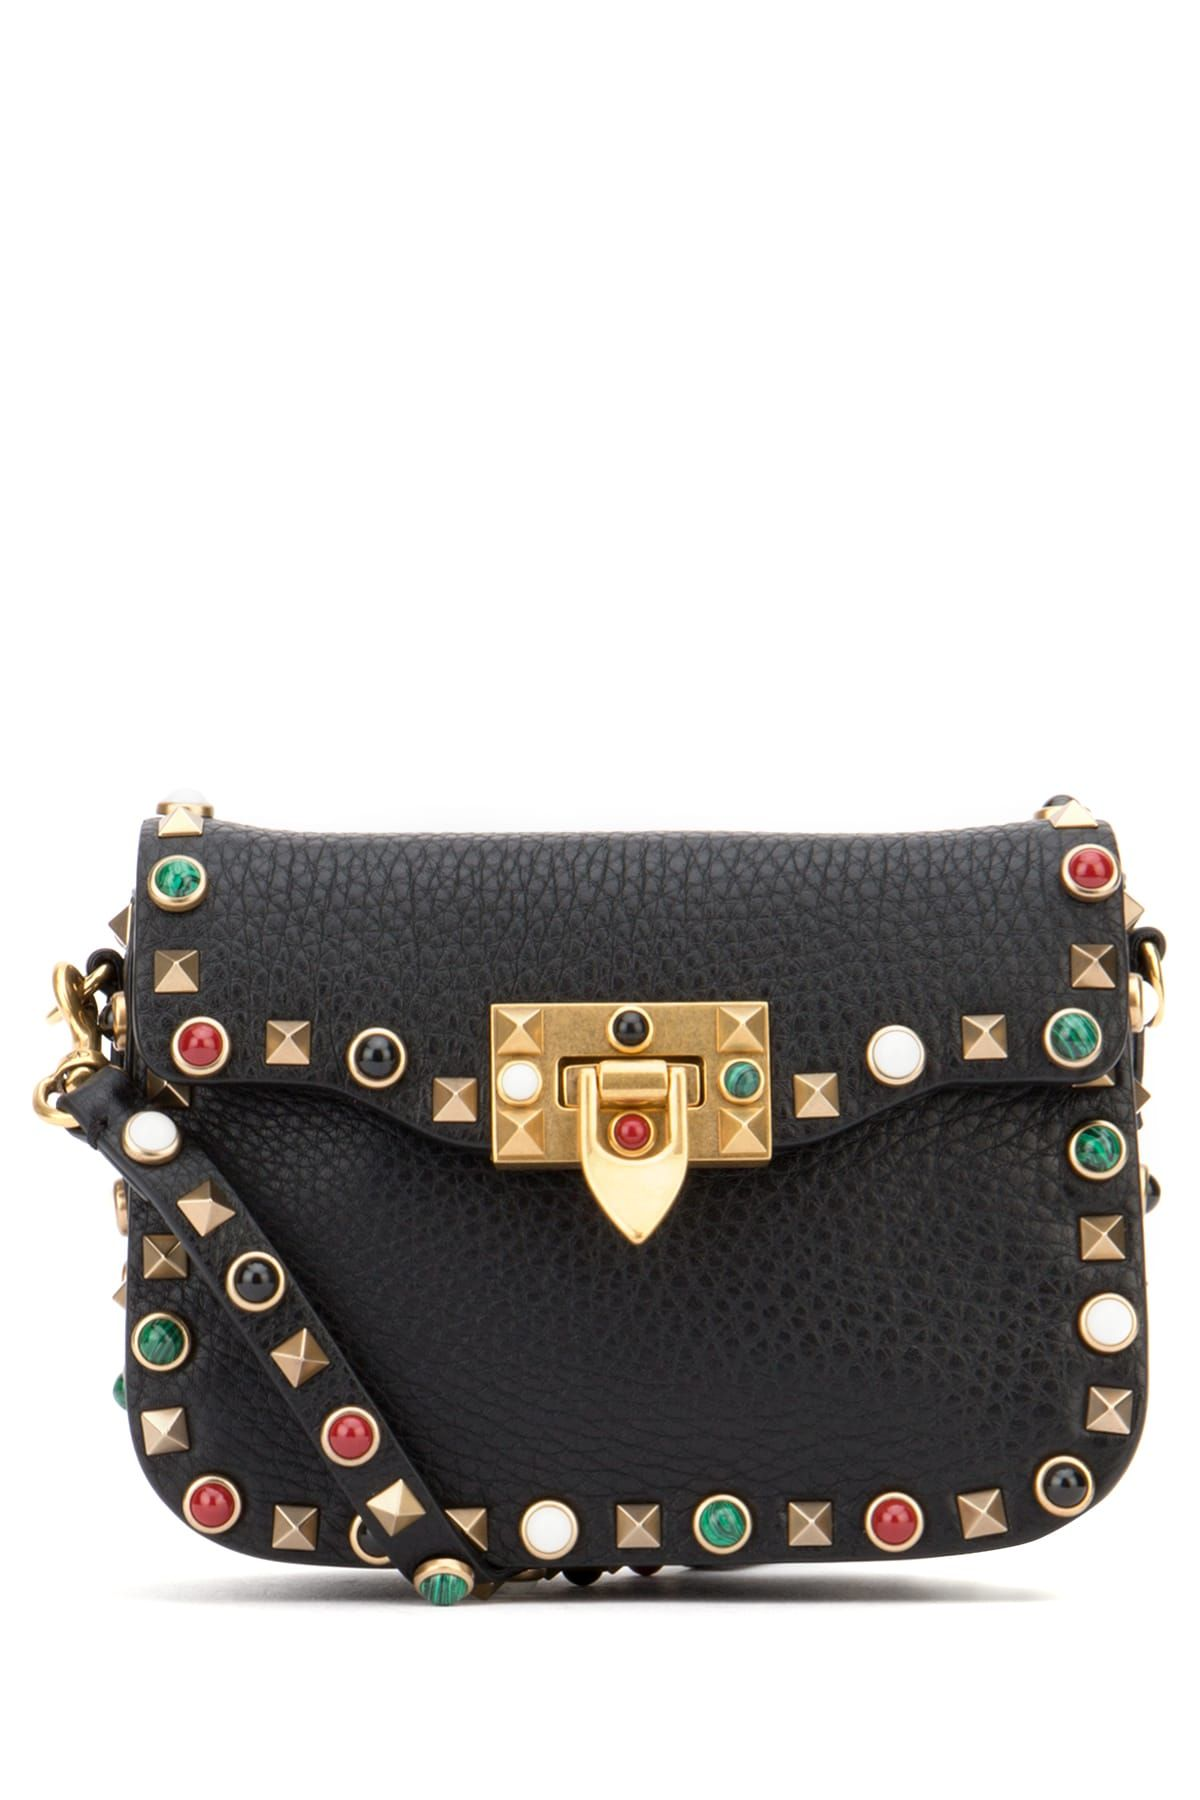 VALENTINO Crossbody bag realized in Alce print calf leather enriched by the  iconic studs and multicolor cabochon stones trimming.